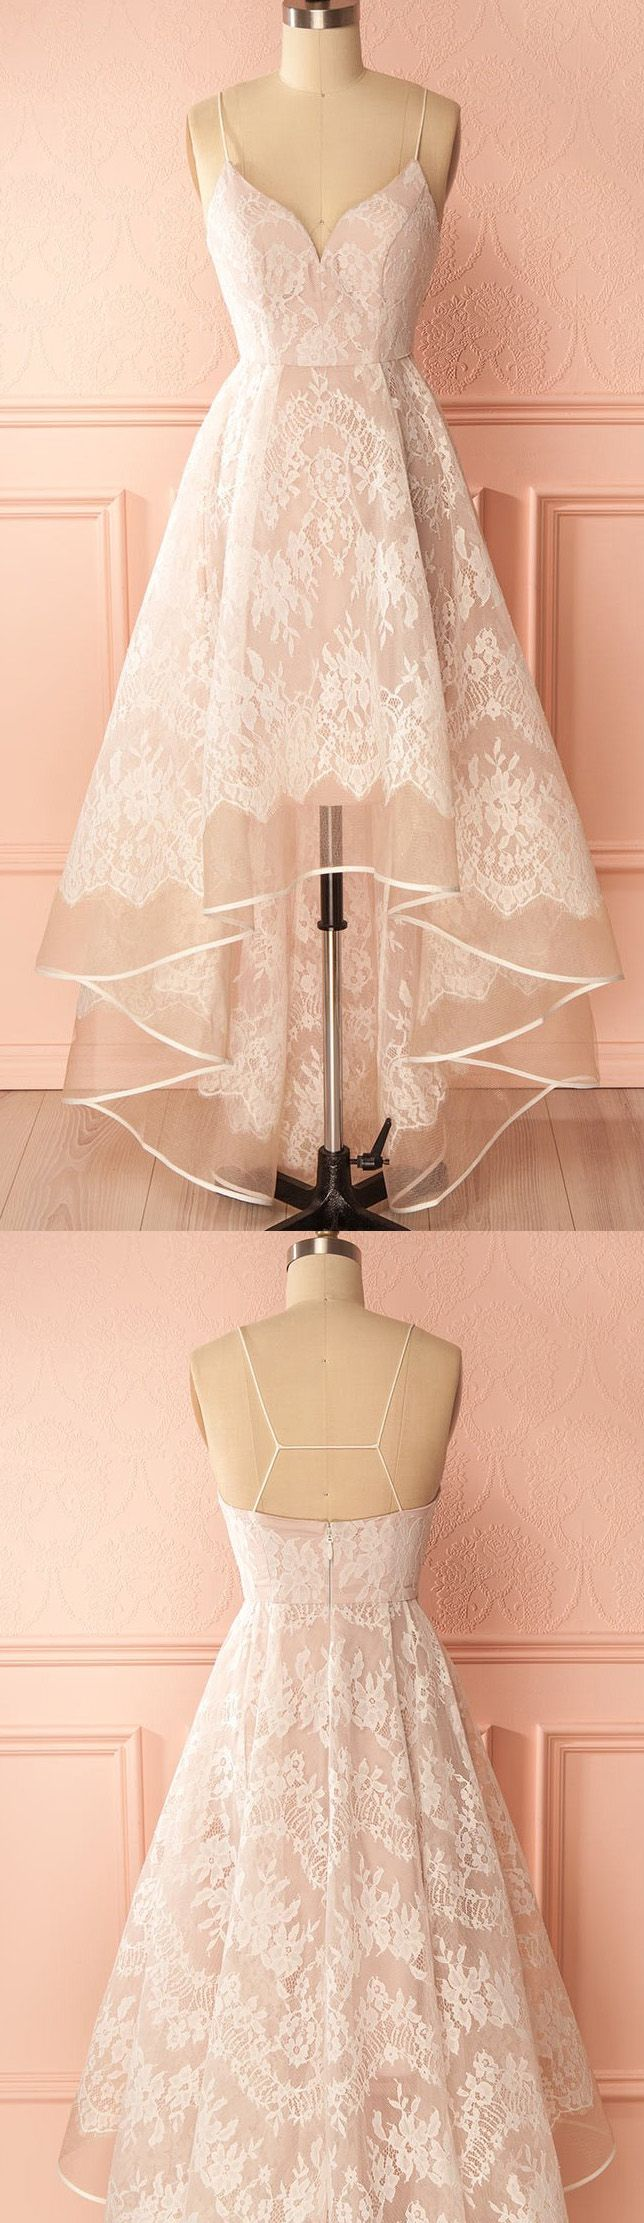 I love this for my vow renewal except without the lace fabric just